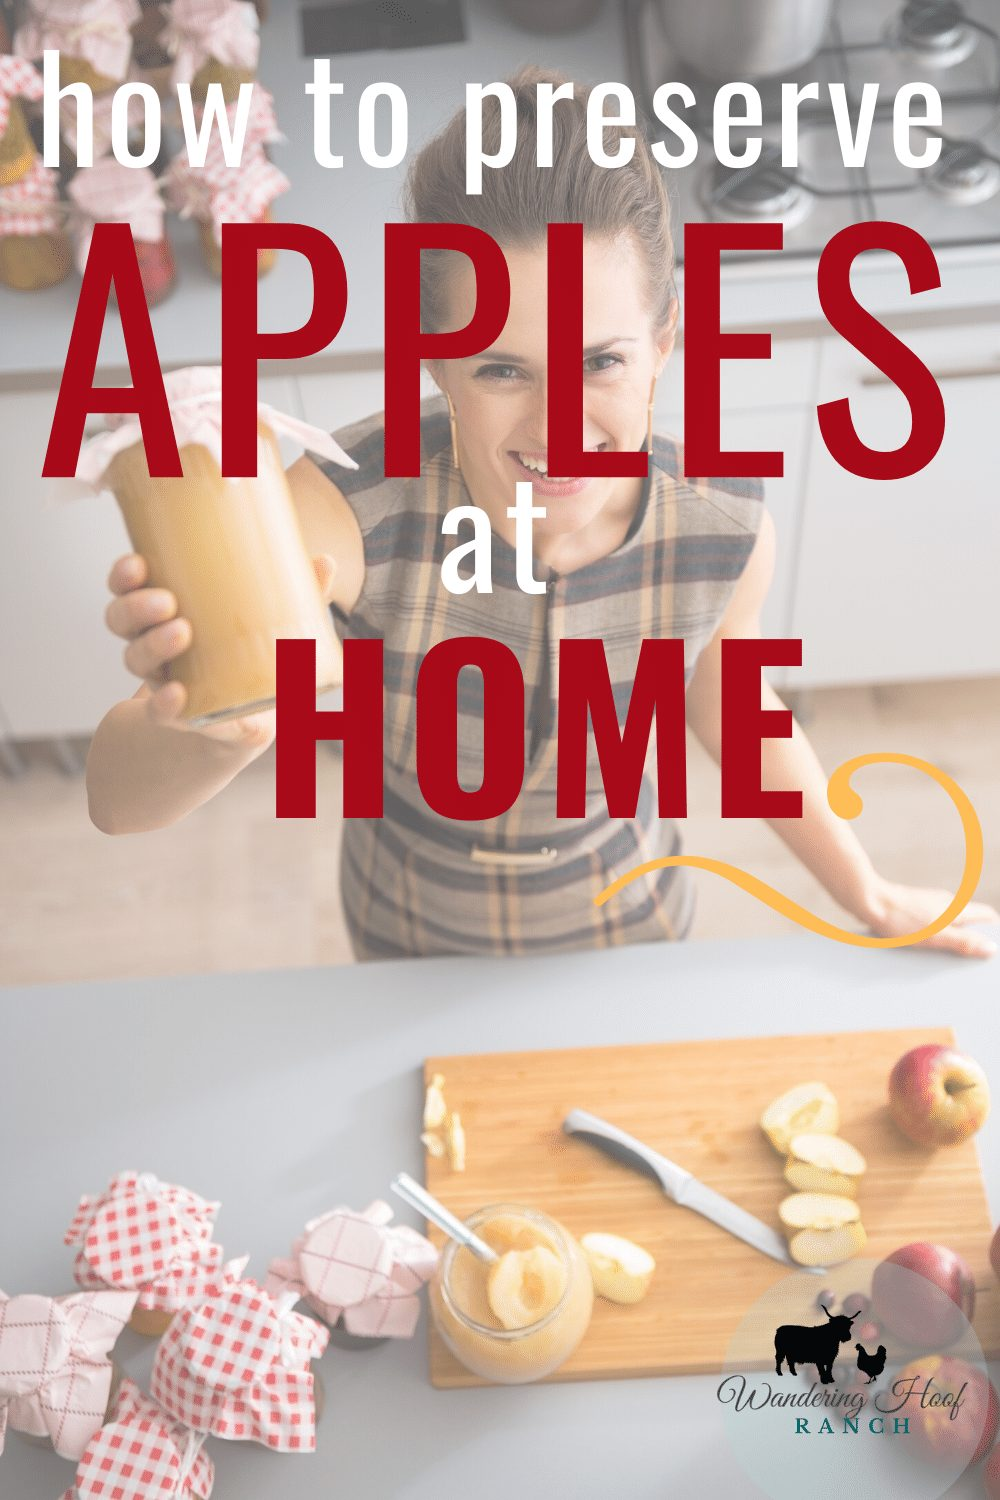 HOW TO PRESERVE APPLES AT HOME, HAPPY LADY DID IT!